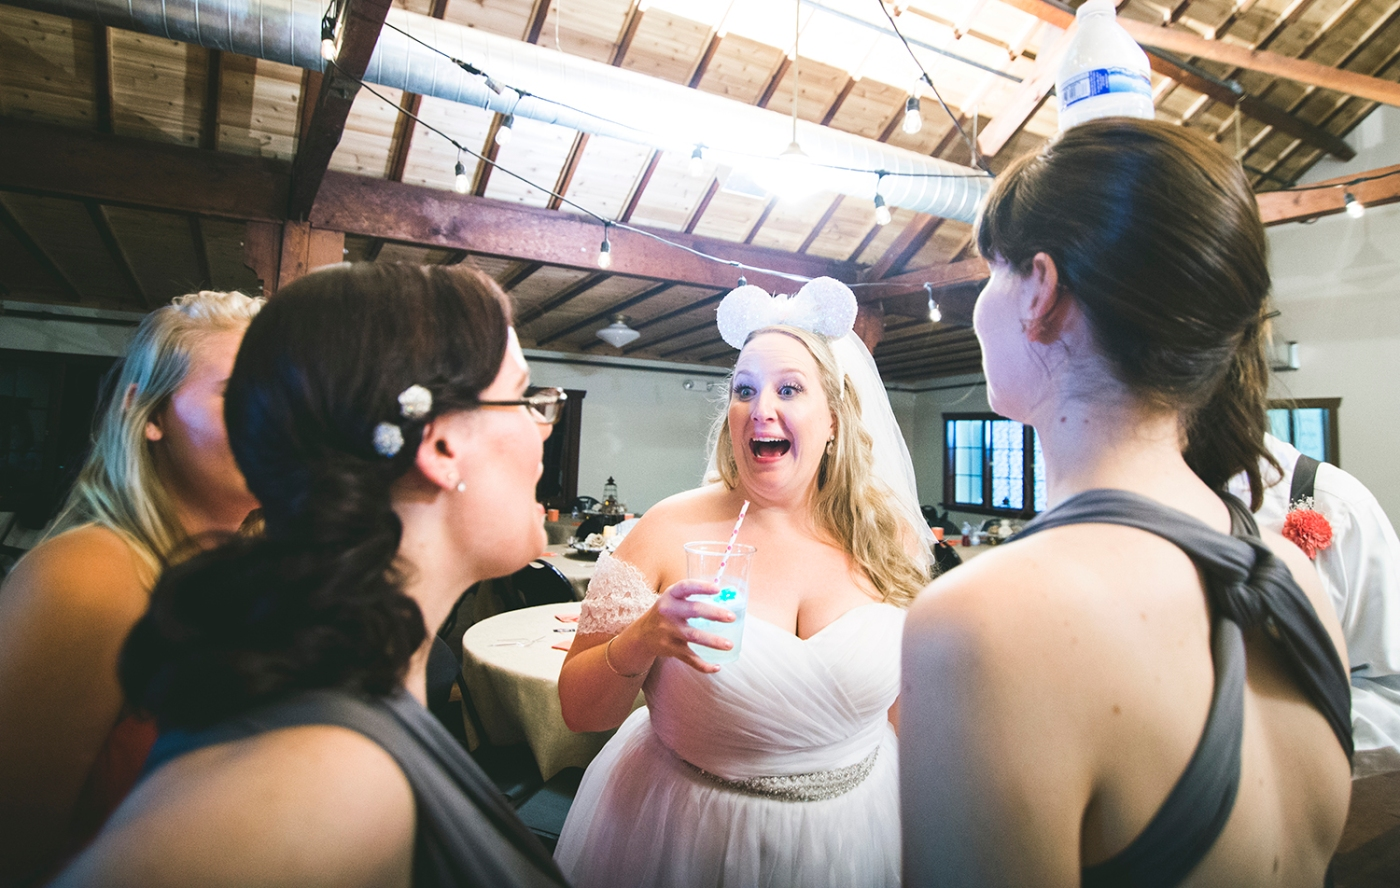 Jane_S_Seattle_photography_Kadie_and_Steve_2016_Des_Moines_Marina_Wedding_DSC_2815